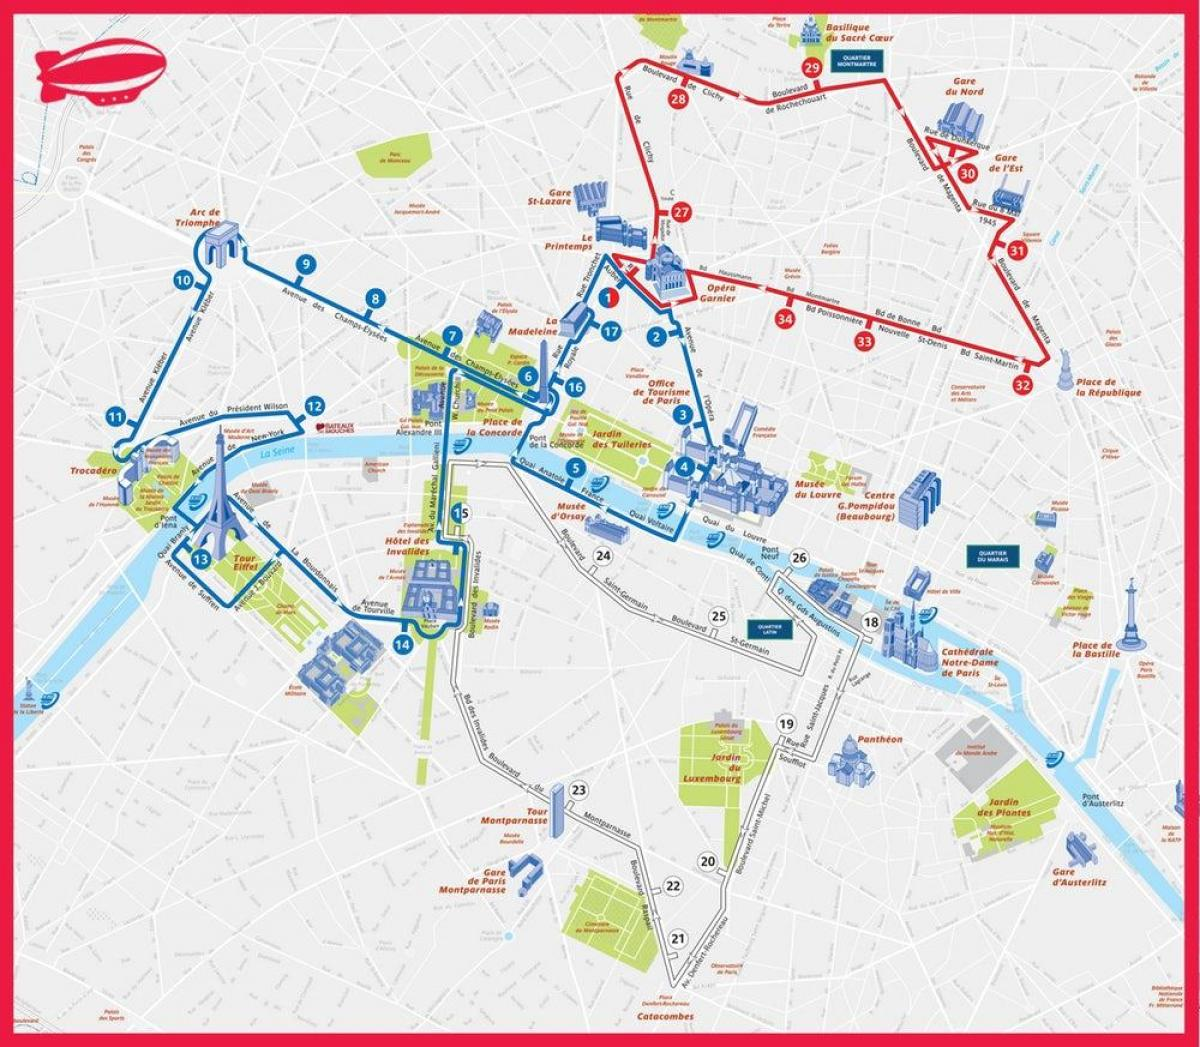 Paris hoho-bus-route-Karte - Paris tourist bus route map ...